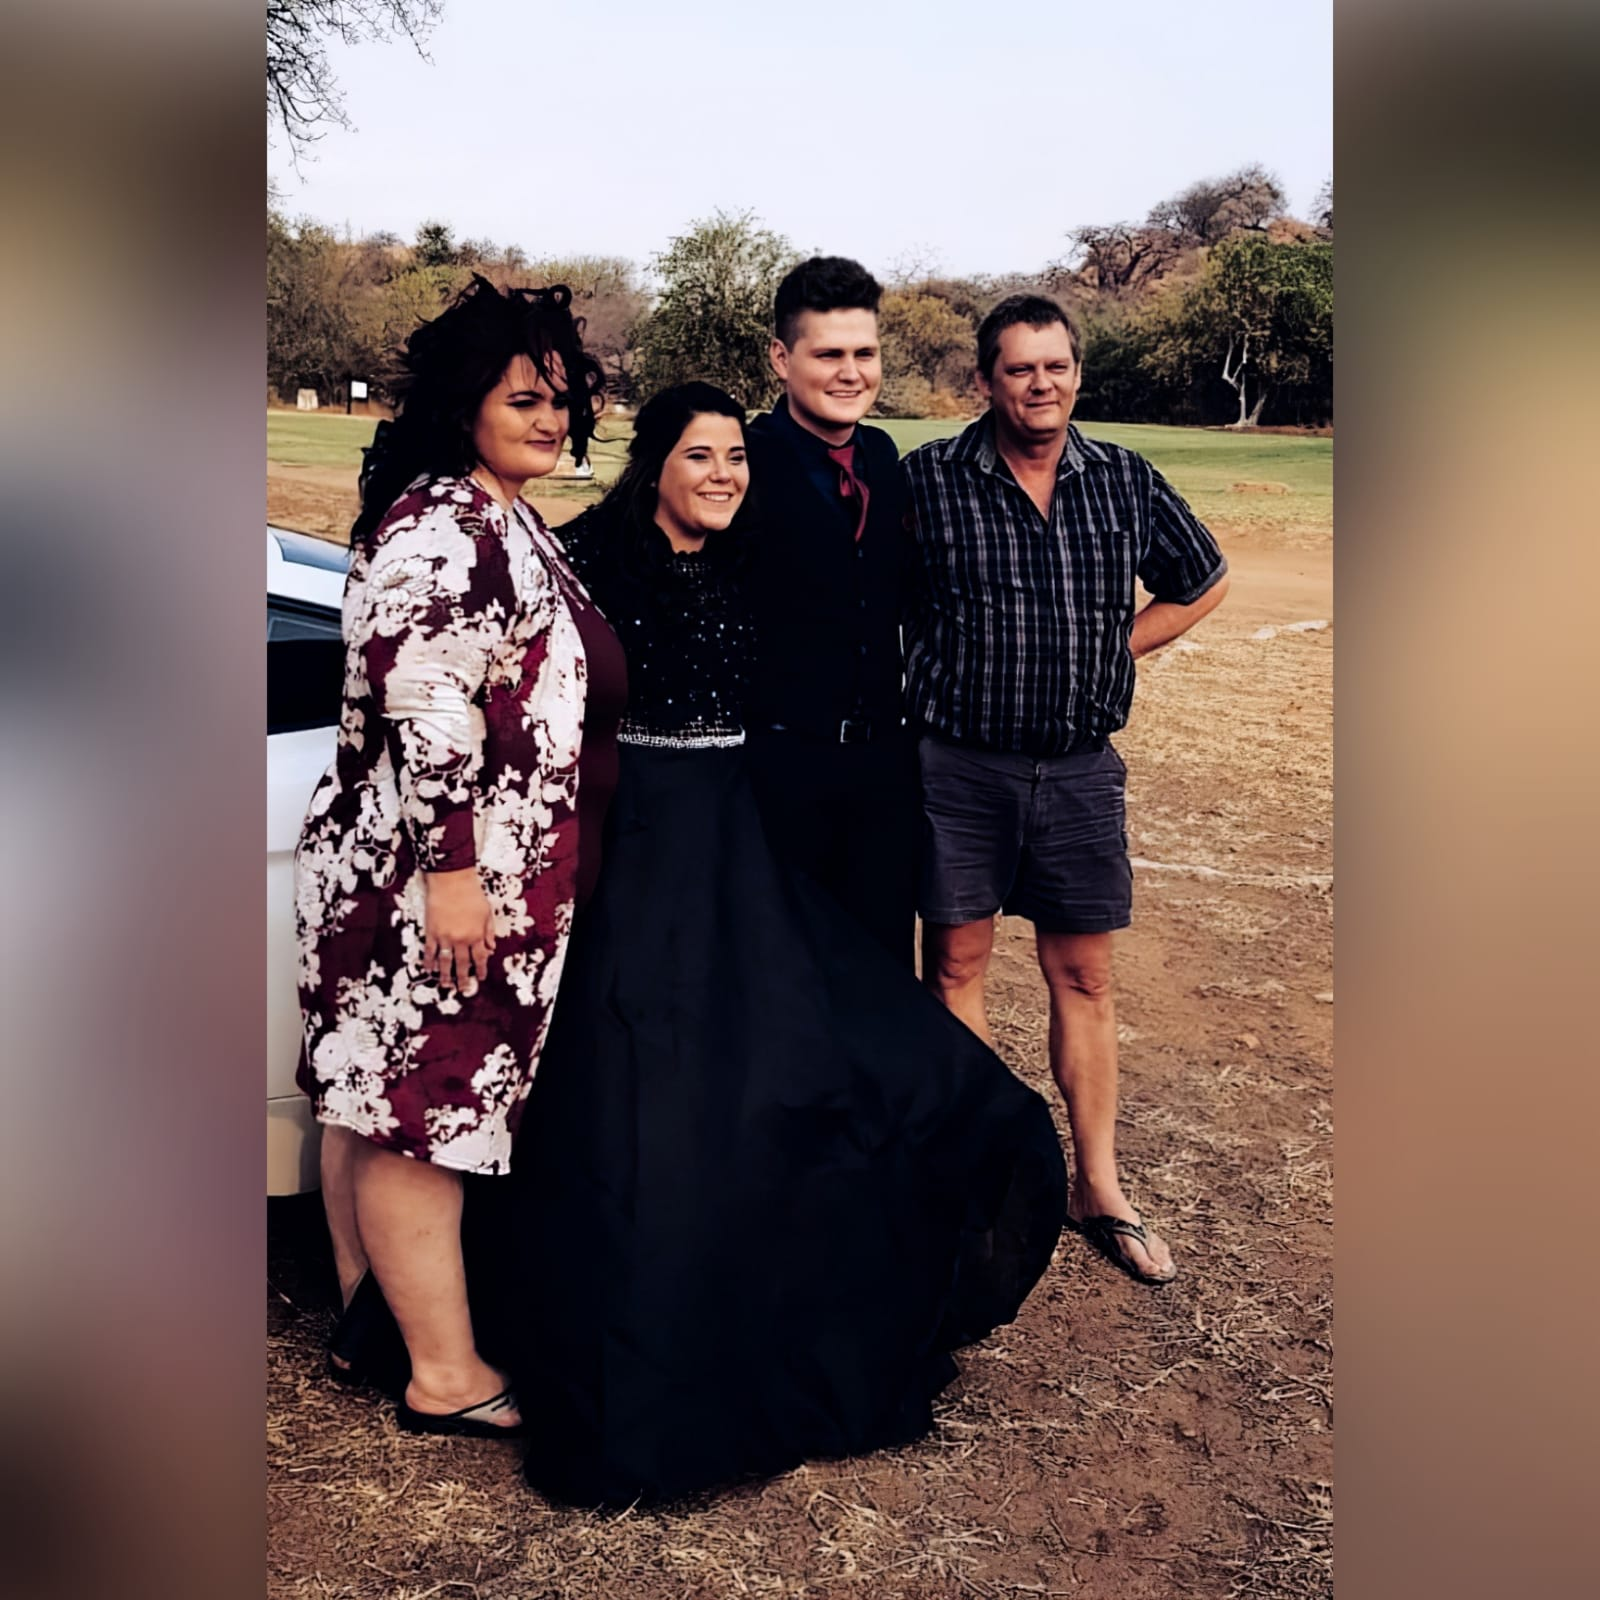 Black matric dress with a lace bodice 5 an elegant design created for a prom night. Black prom dress with a lace bodice with a slight sheer look detailed with silver beads and waist belt. Round neckline and long sleeves bottom flowy in a bridal organza